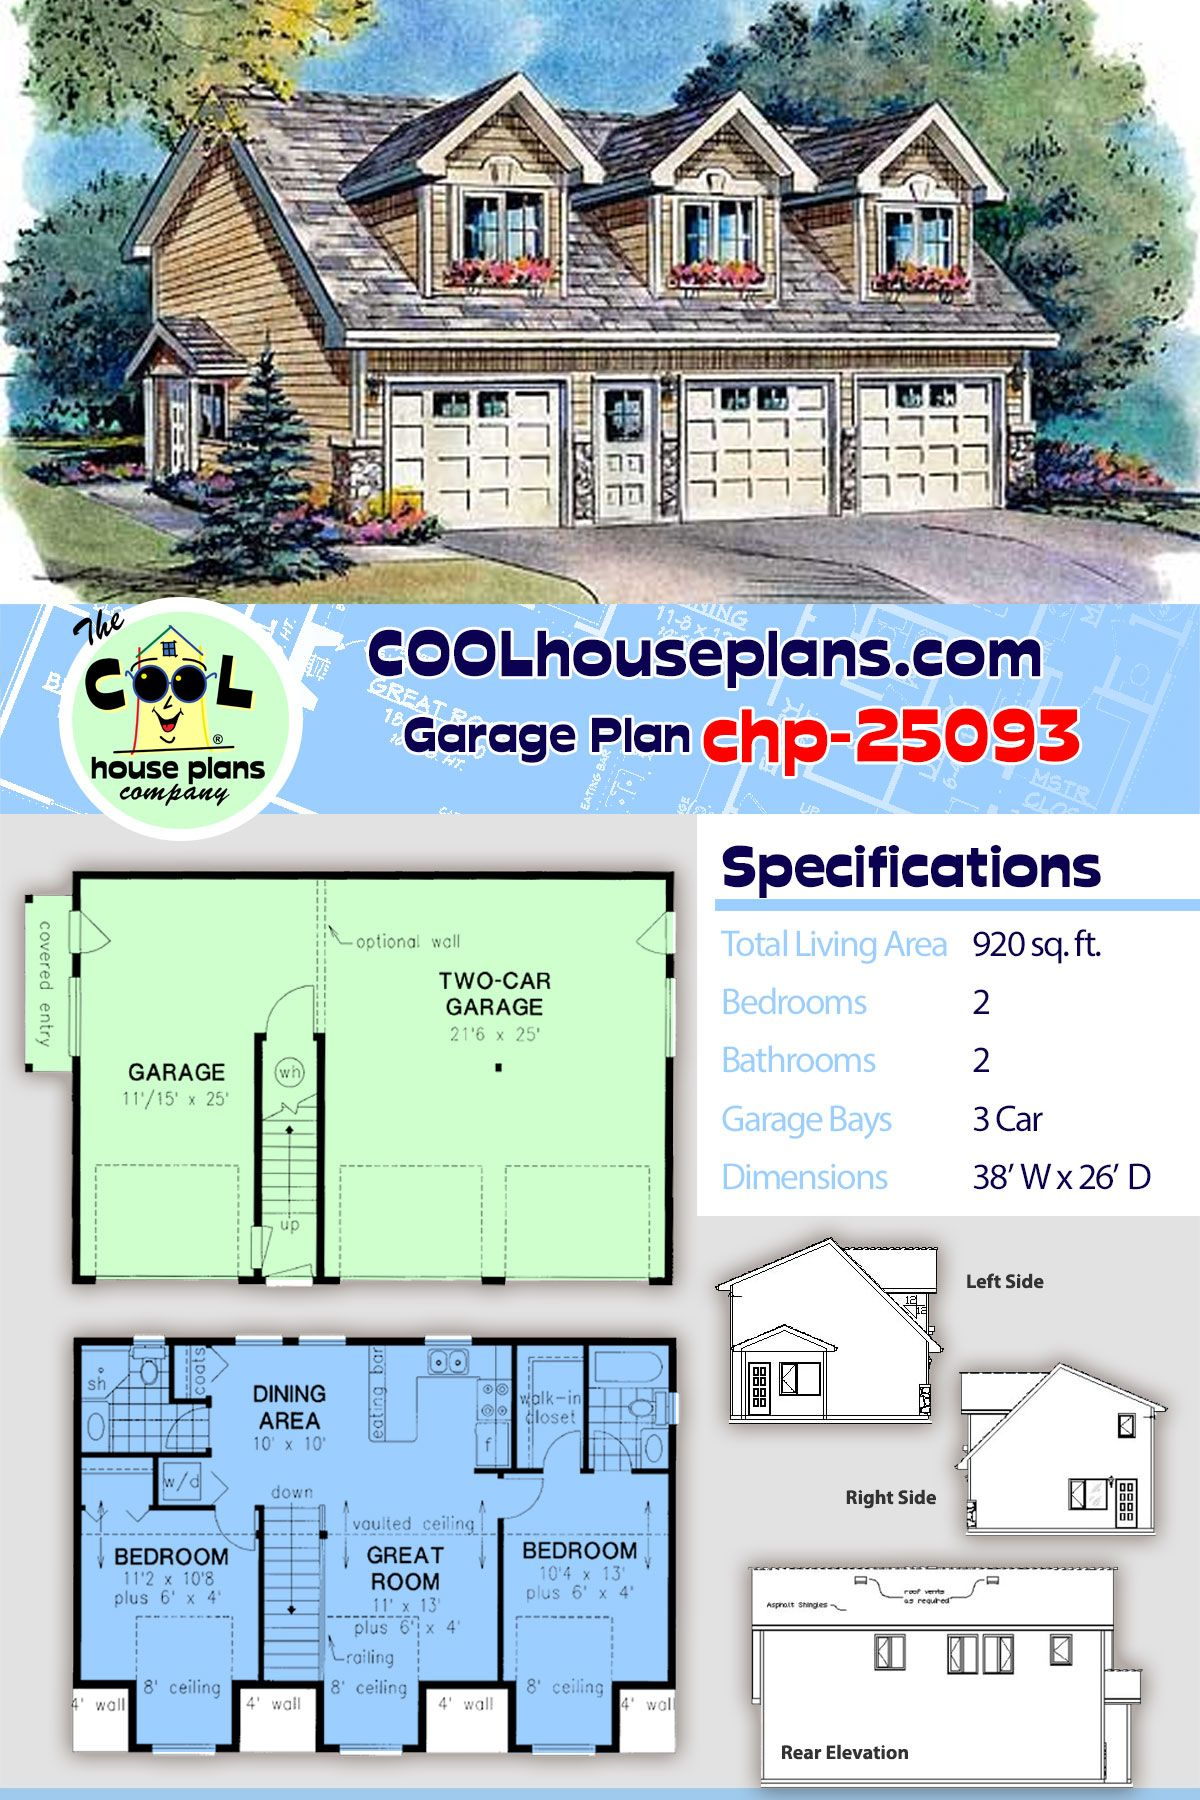 Garage Apartment Plan chp is a Classic 2 Bedroom Carriage House Design